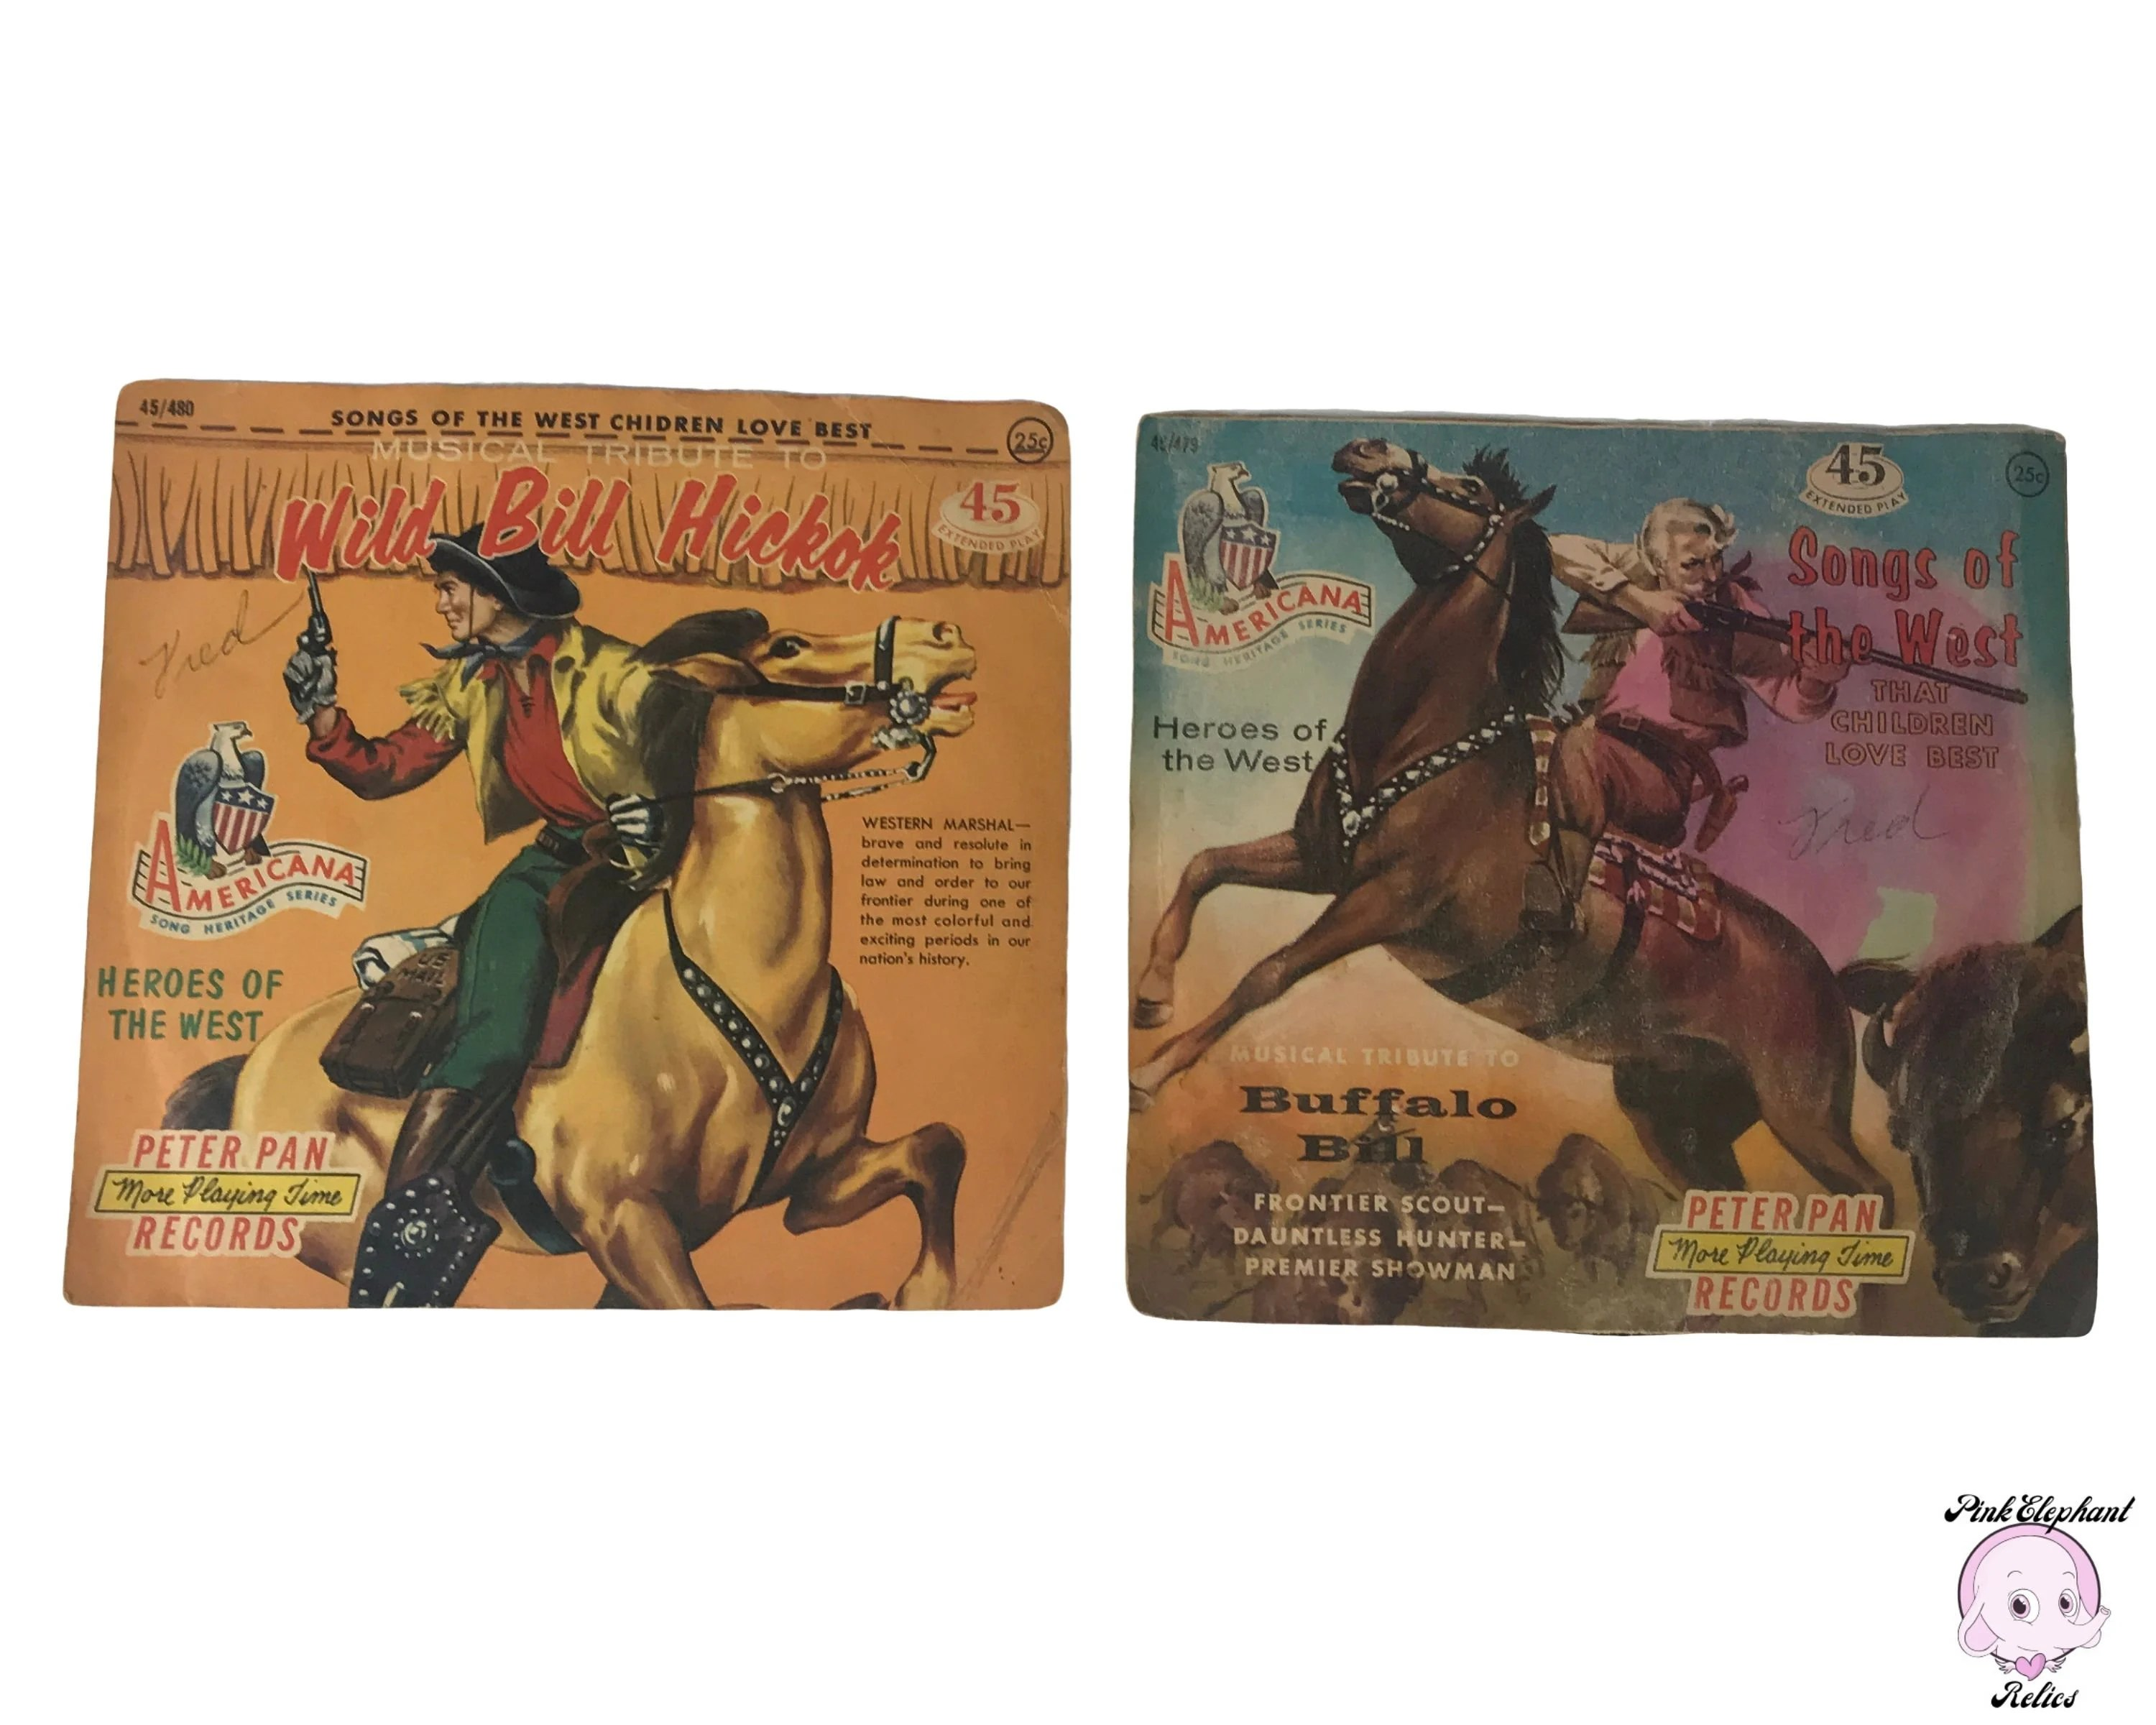 2 Vintage Wild West Kids 7 Records 45 Rpm Americana Song